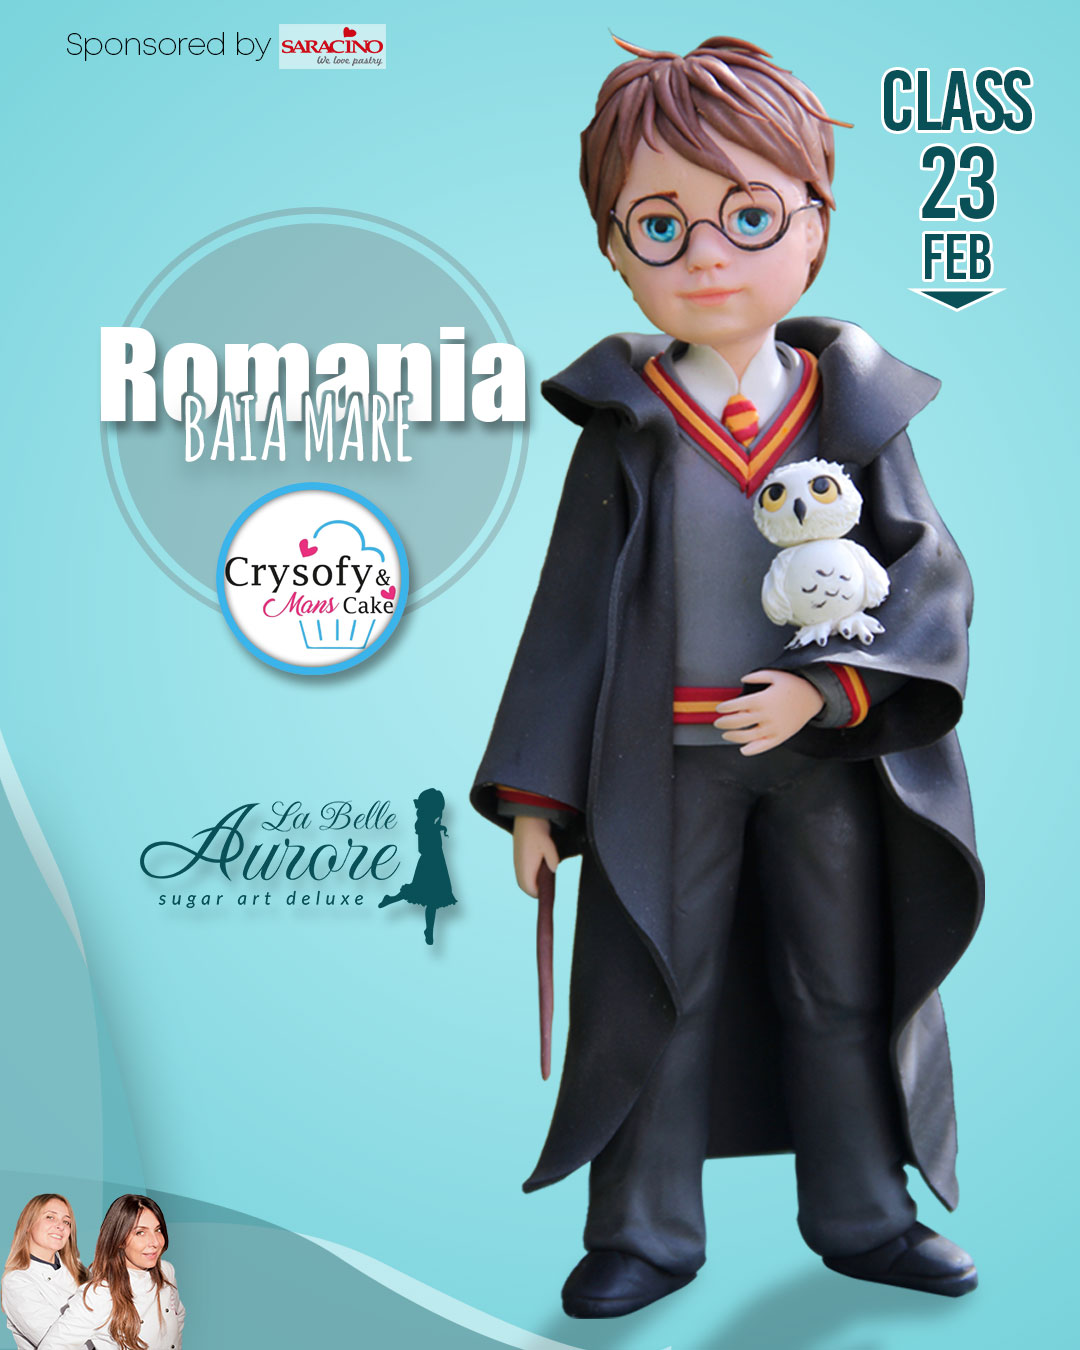 Harry Potter master class romania - Event Hosted by crysofy mans cakes - Standing Figure Modeling by La Belle Aurore